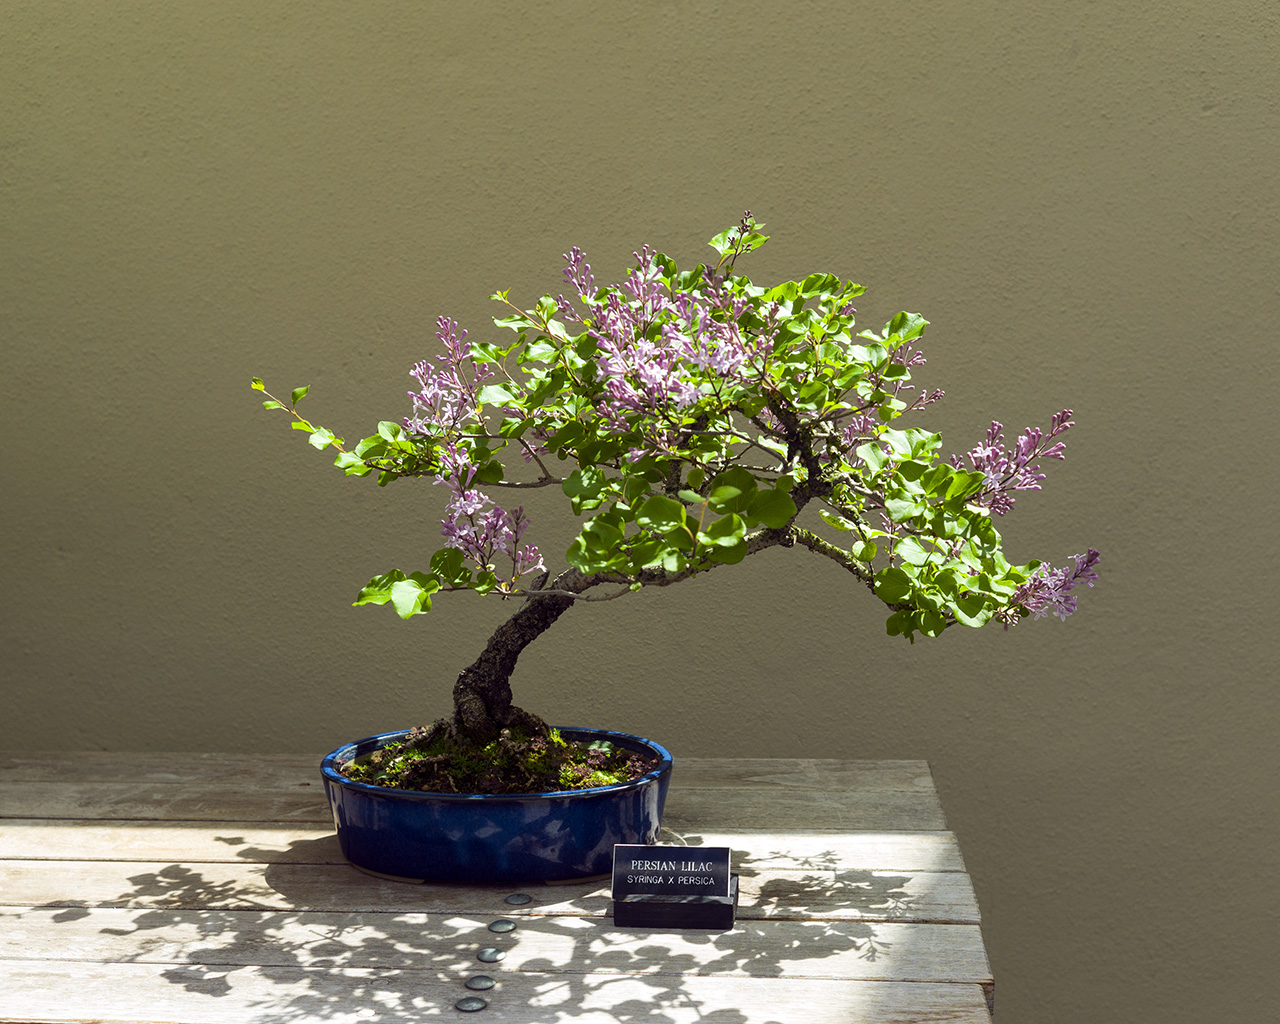 bonsai4crop1280.jpg